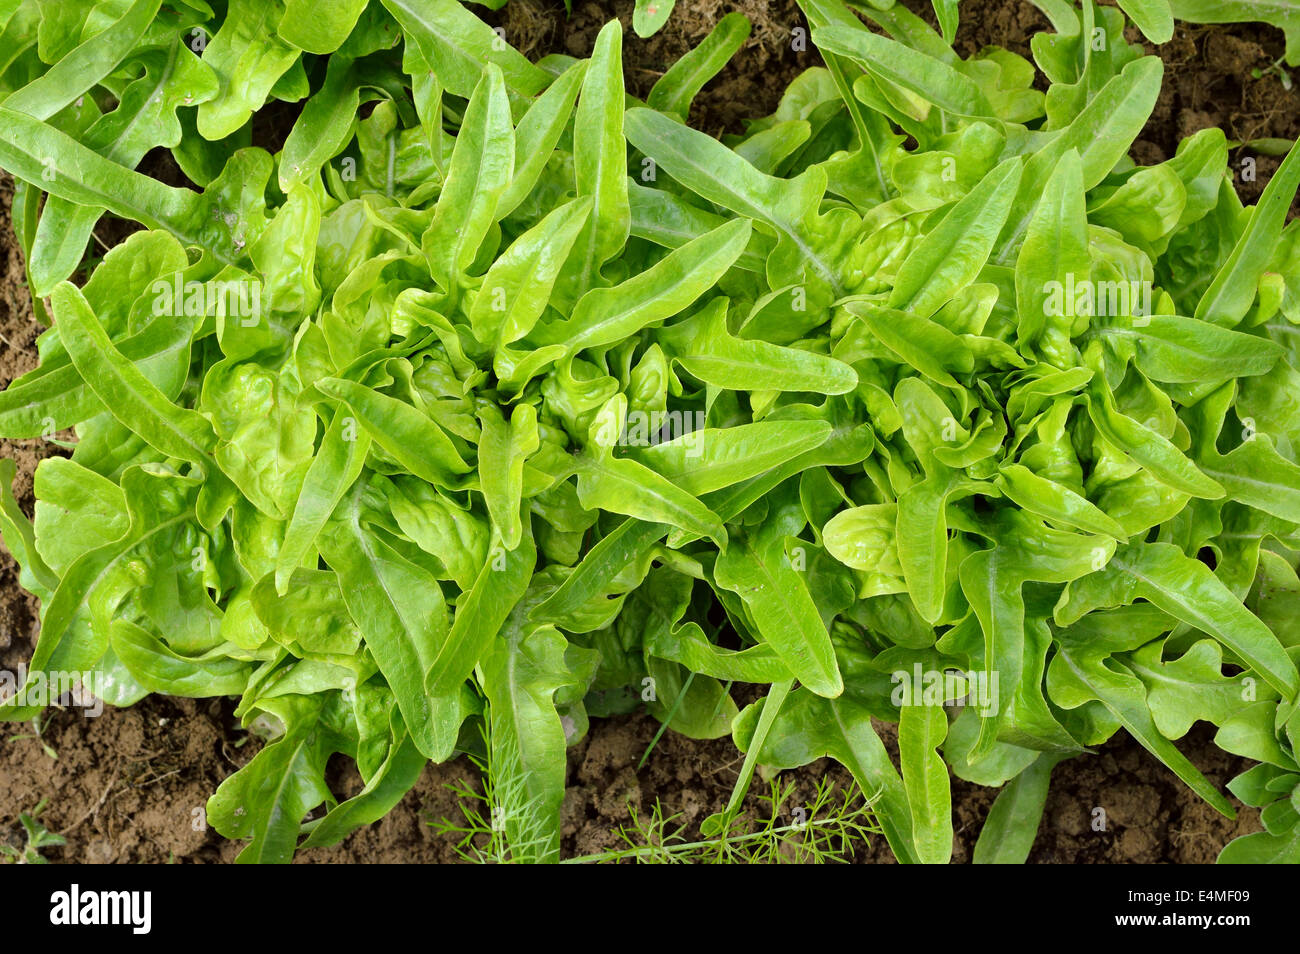 Two green, fresh oakleaf lettuce DUBACEK(Lactuca sativa). Top view rosette of lobate leaves. Organic gardening. - Stock Image